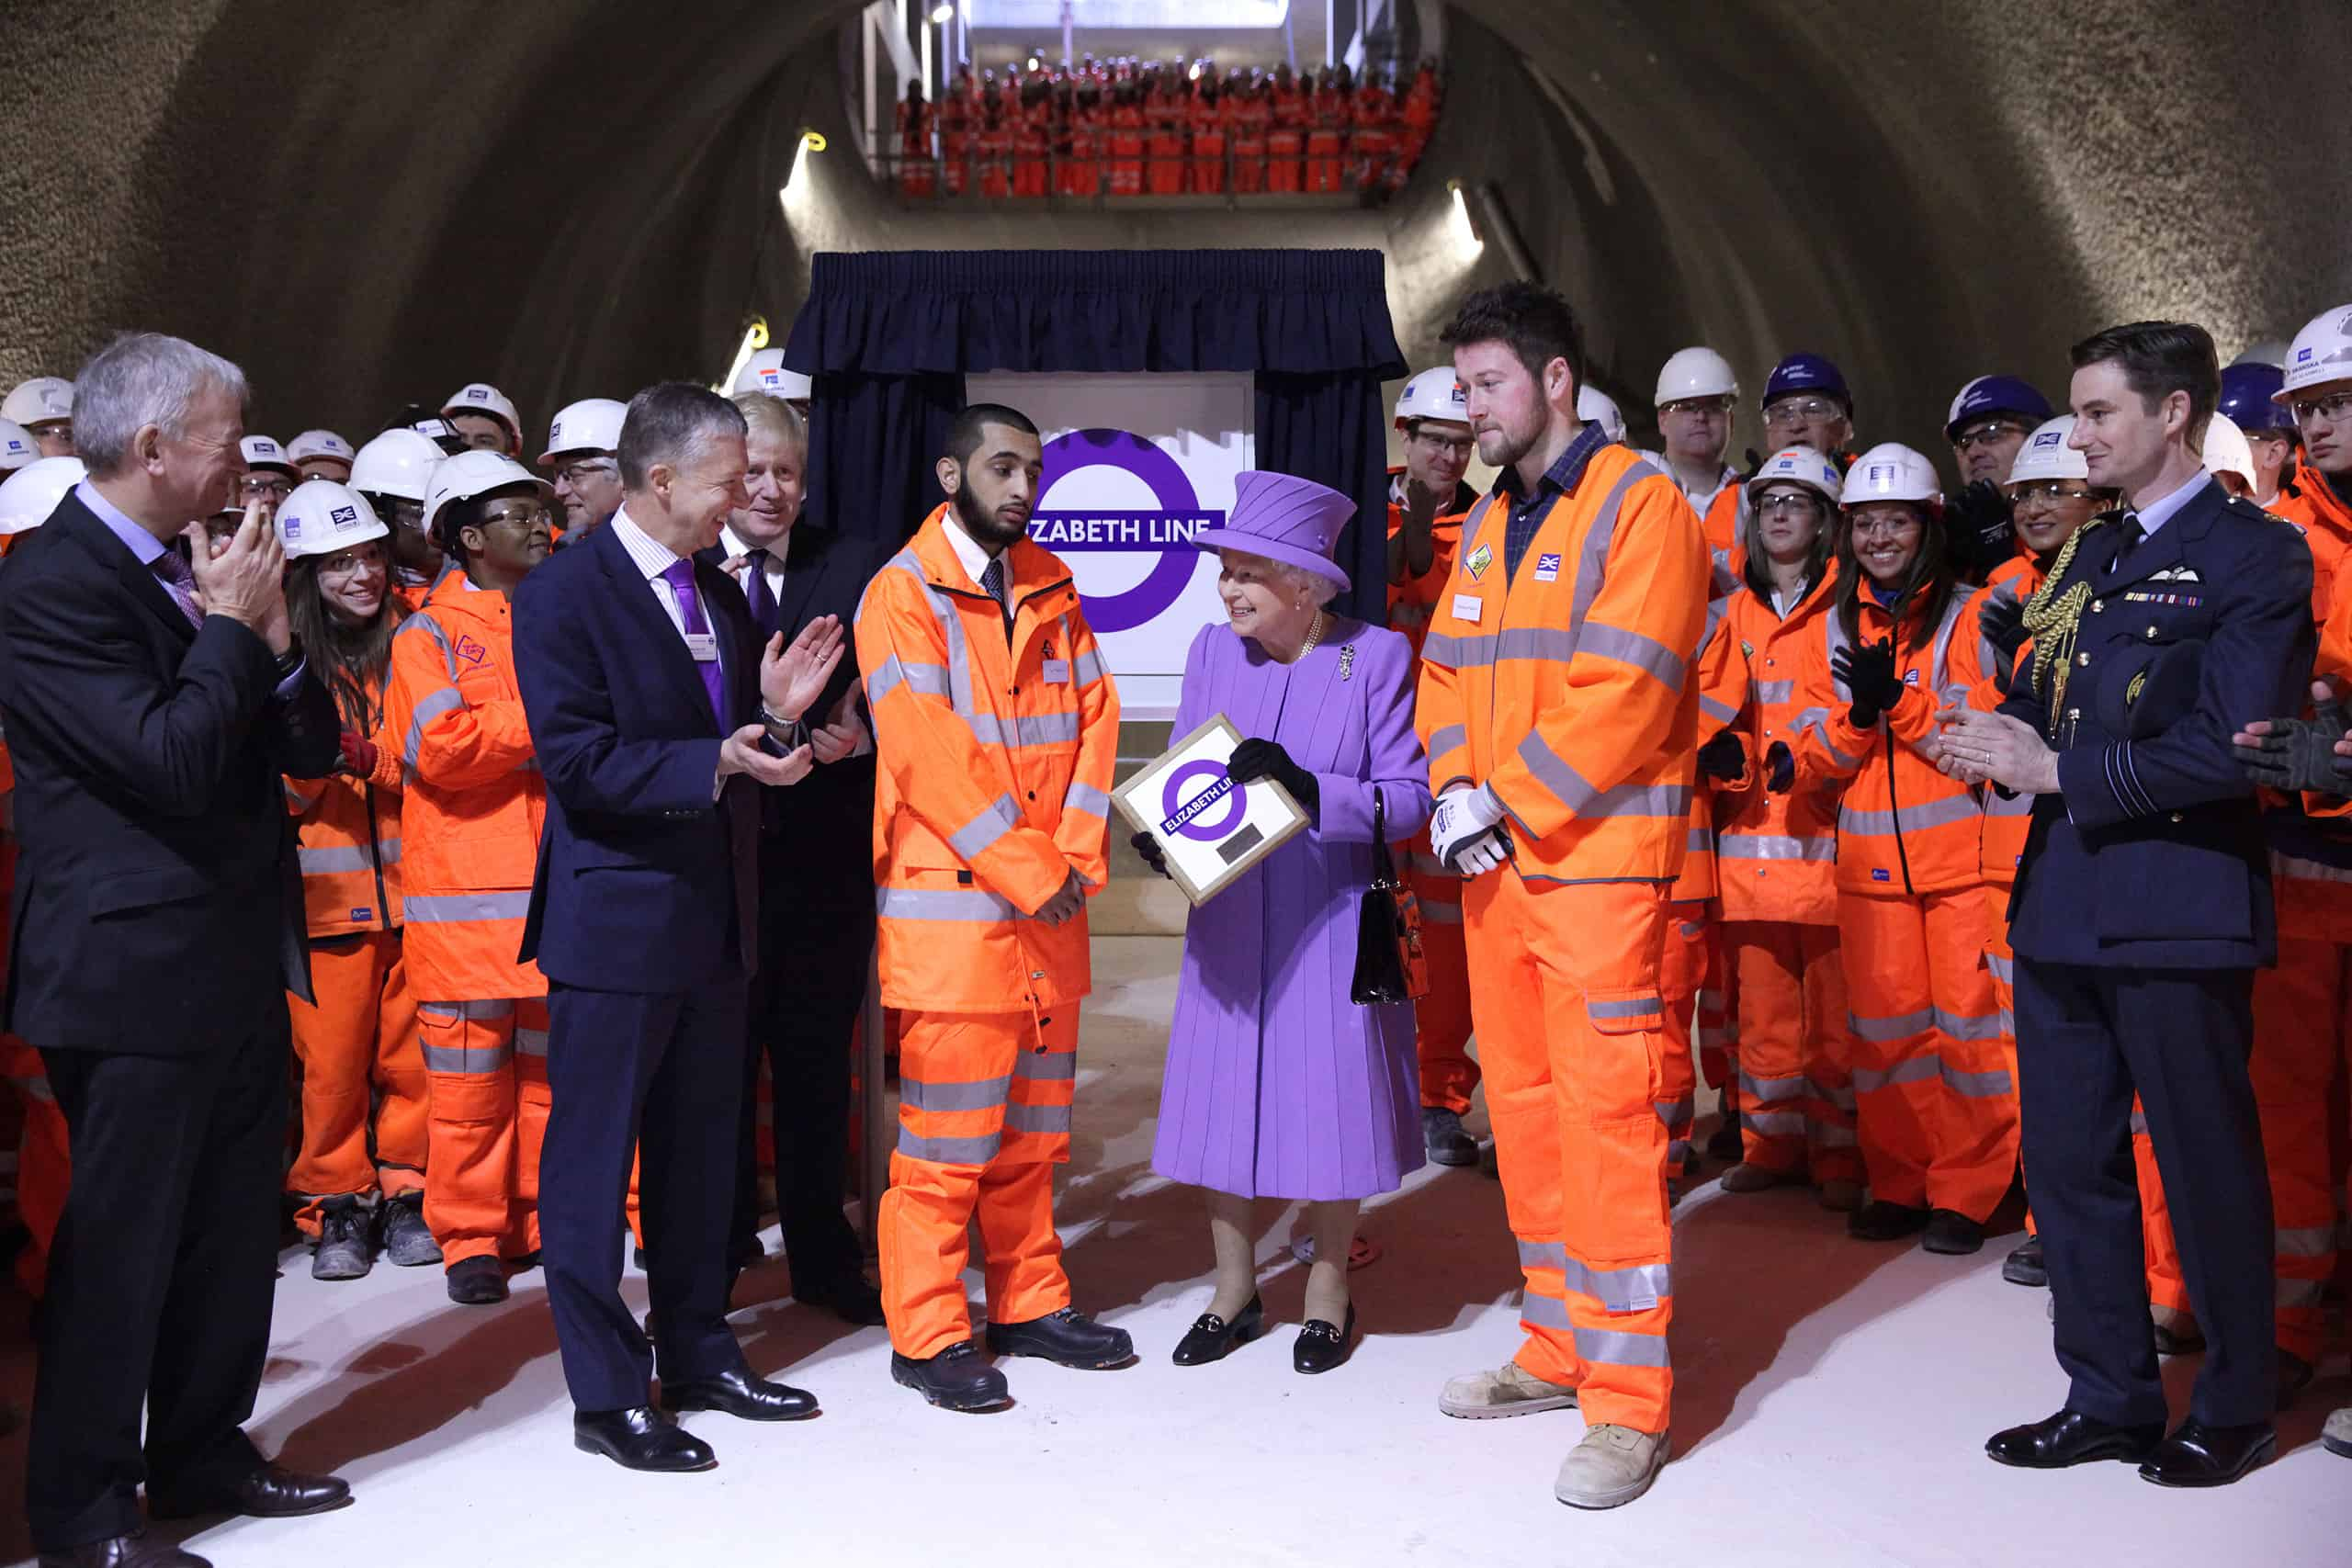 She'll probably never use it but it'll be named after her anyway: HM The Queen at the naming event for the line formerly known as Crossrail. Credit: James O Jenkins